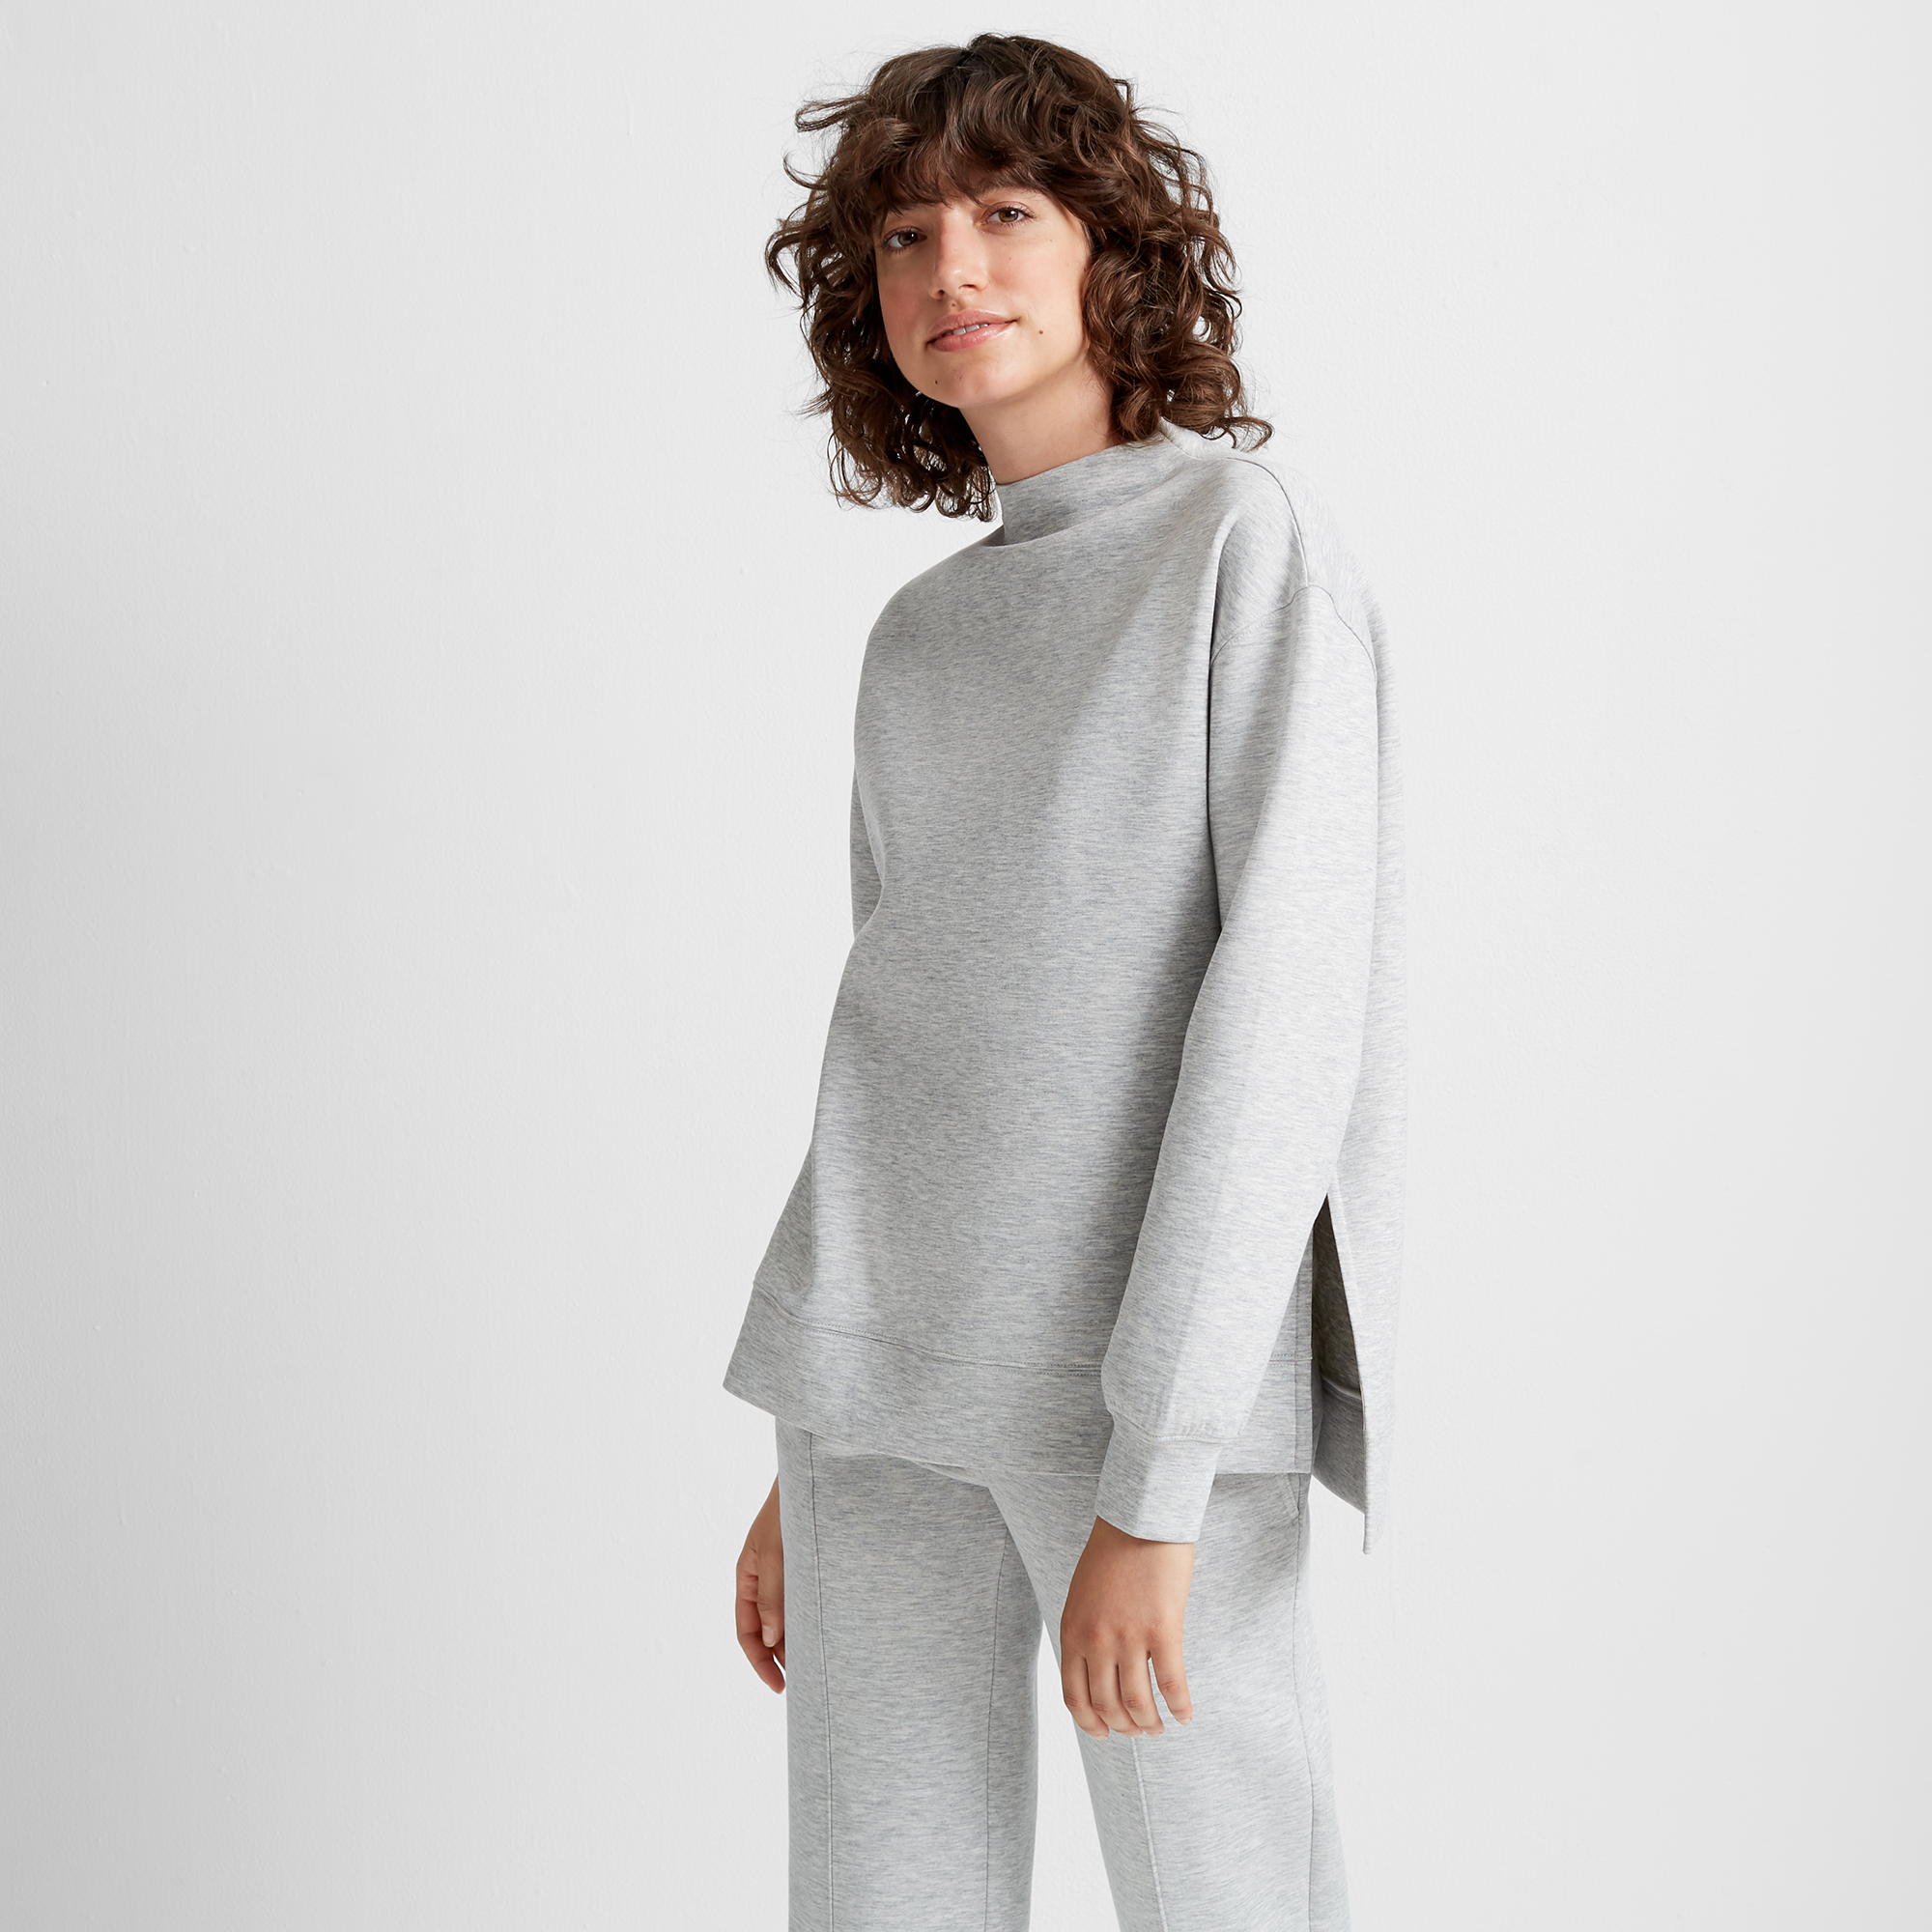 Mockneck Sweatshirt Basic Grey.jpg